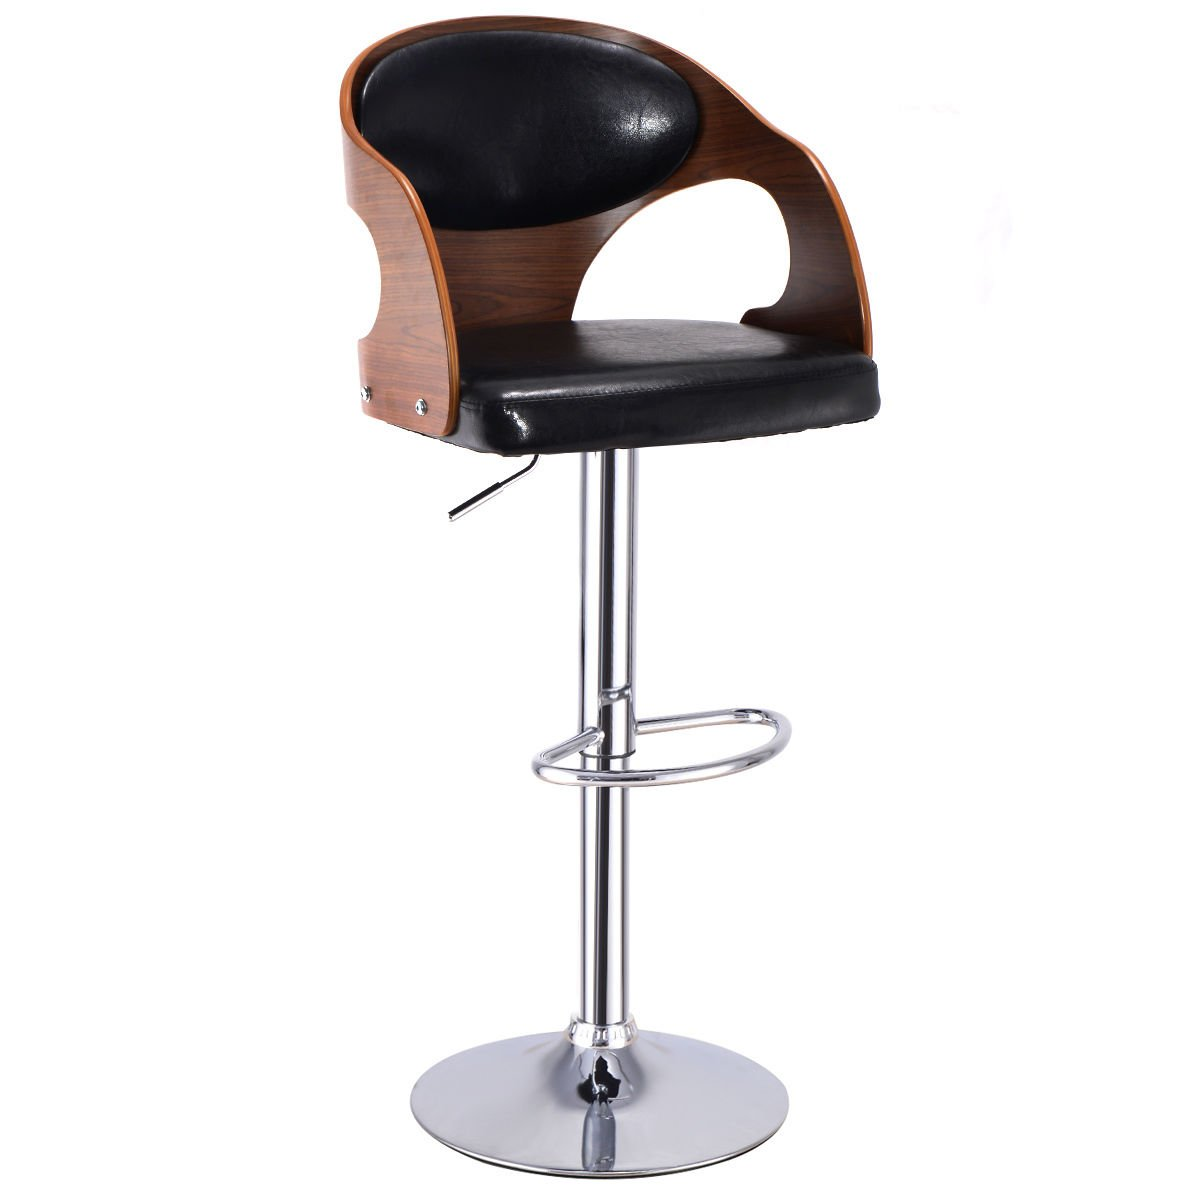 12 Best Modern Swivel Bar Stools With Back Adjustable Arms Bestlyy 2019 Best Products